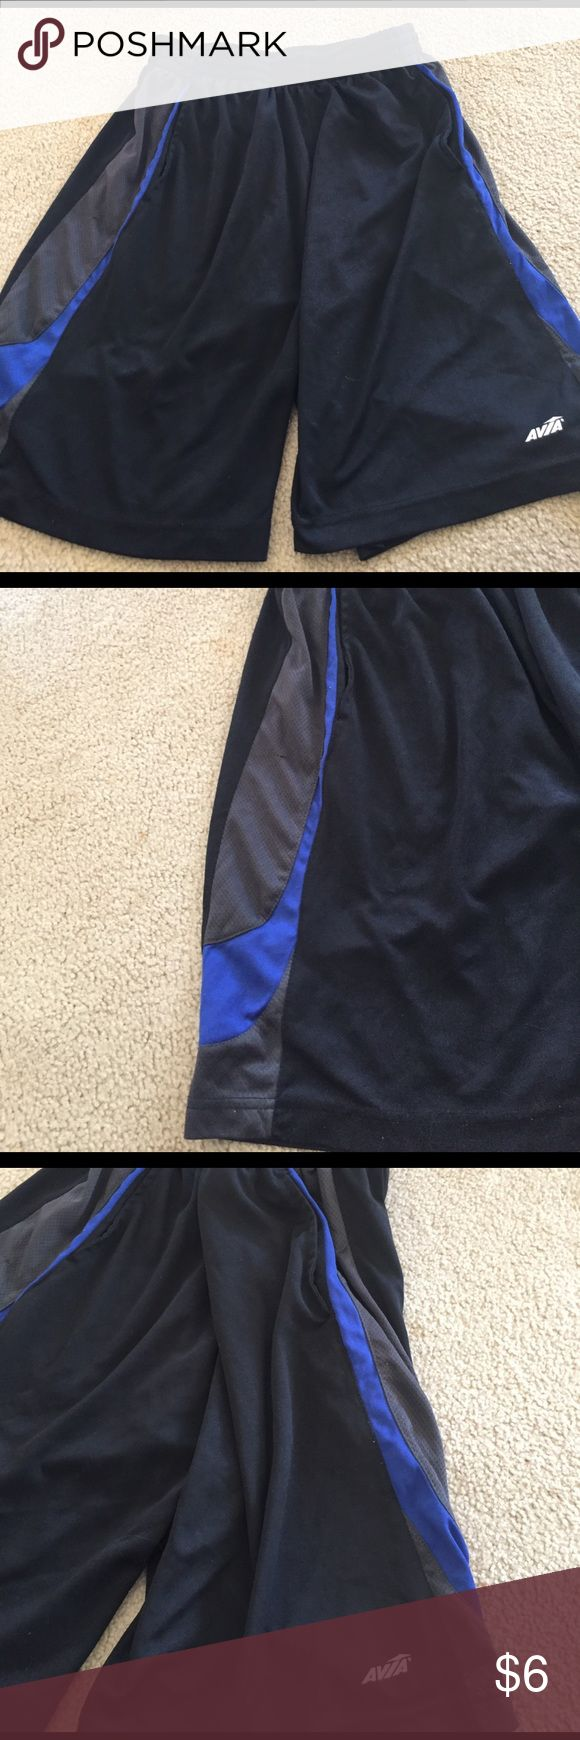 Men's Avia brand workout shorts Gently used-men's workout shorts-blue gray and black colored Avia Shorts Athletic